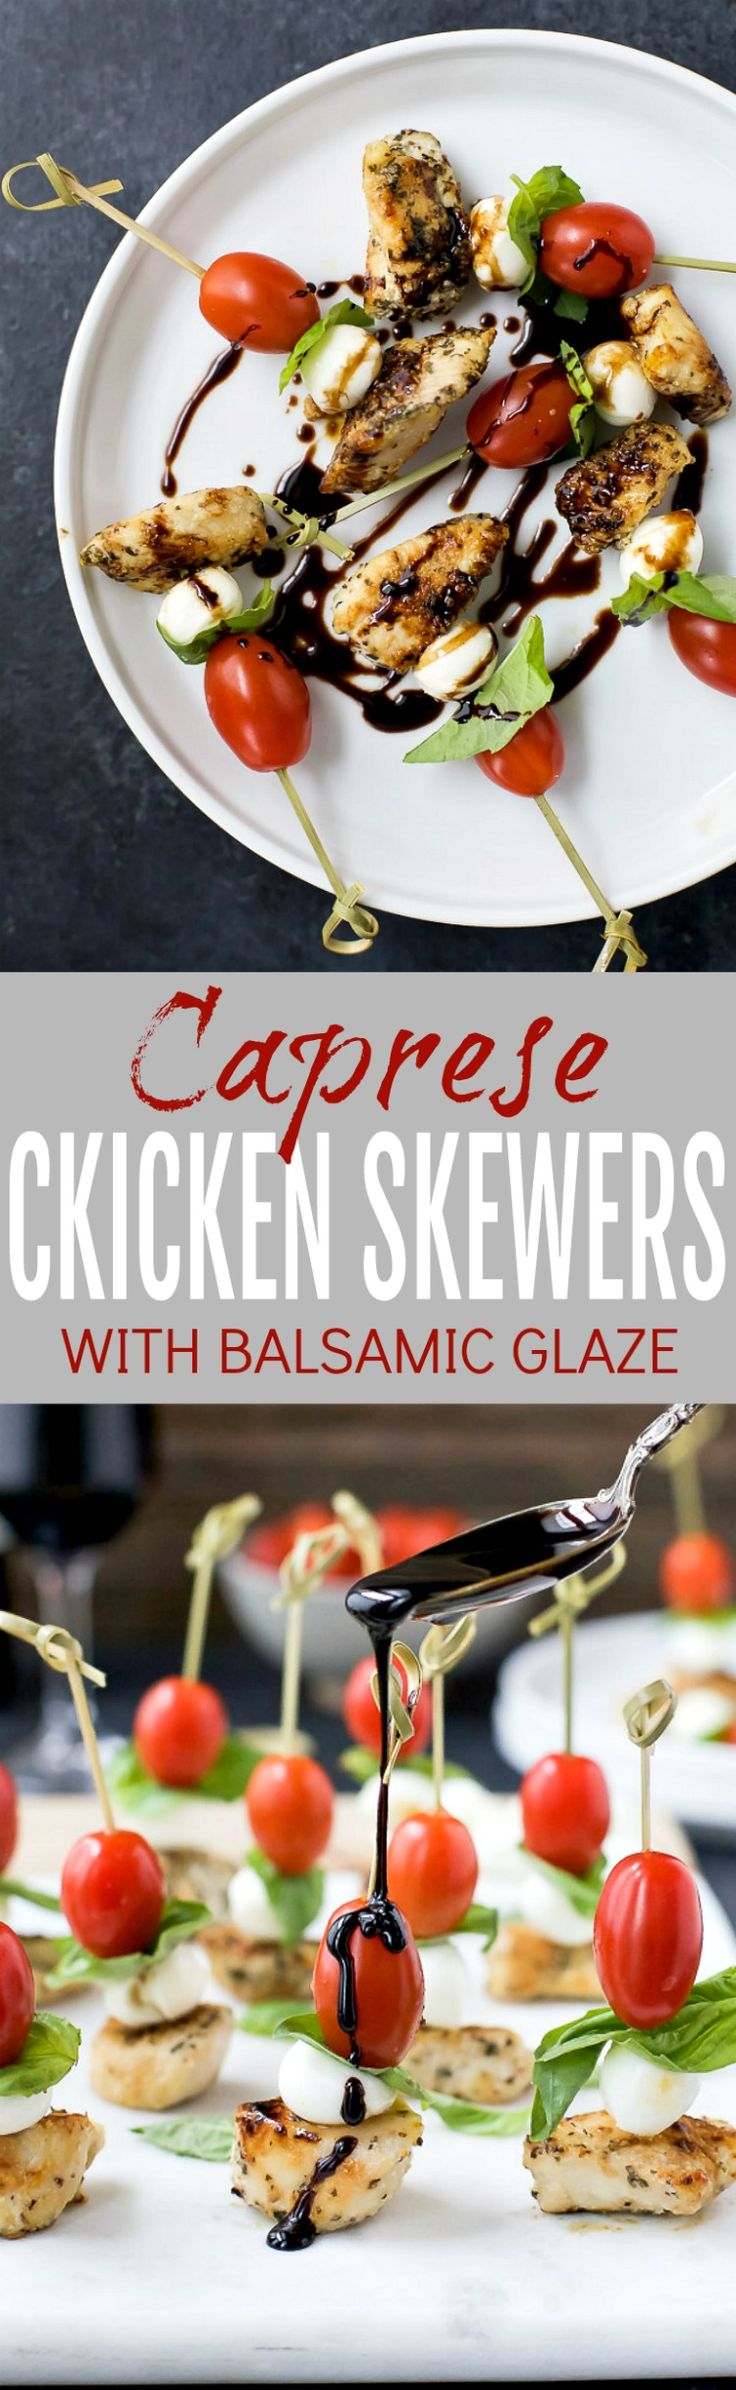 Easy Caprese Chicken Skewers drizzled with a homemade Balsamic Glaze absolutely irresistible and make the ULTIMATE party appetizer! Just watch these gluten free caprese bites disappear from the appetizer table! #ad